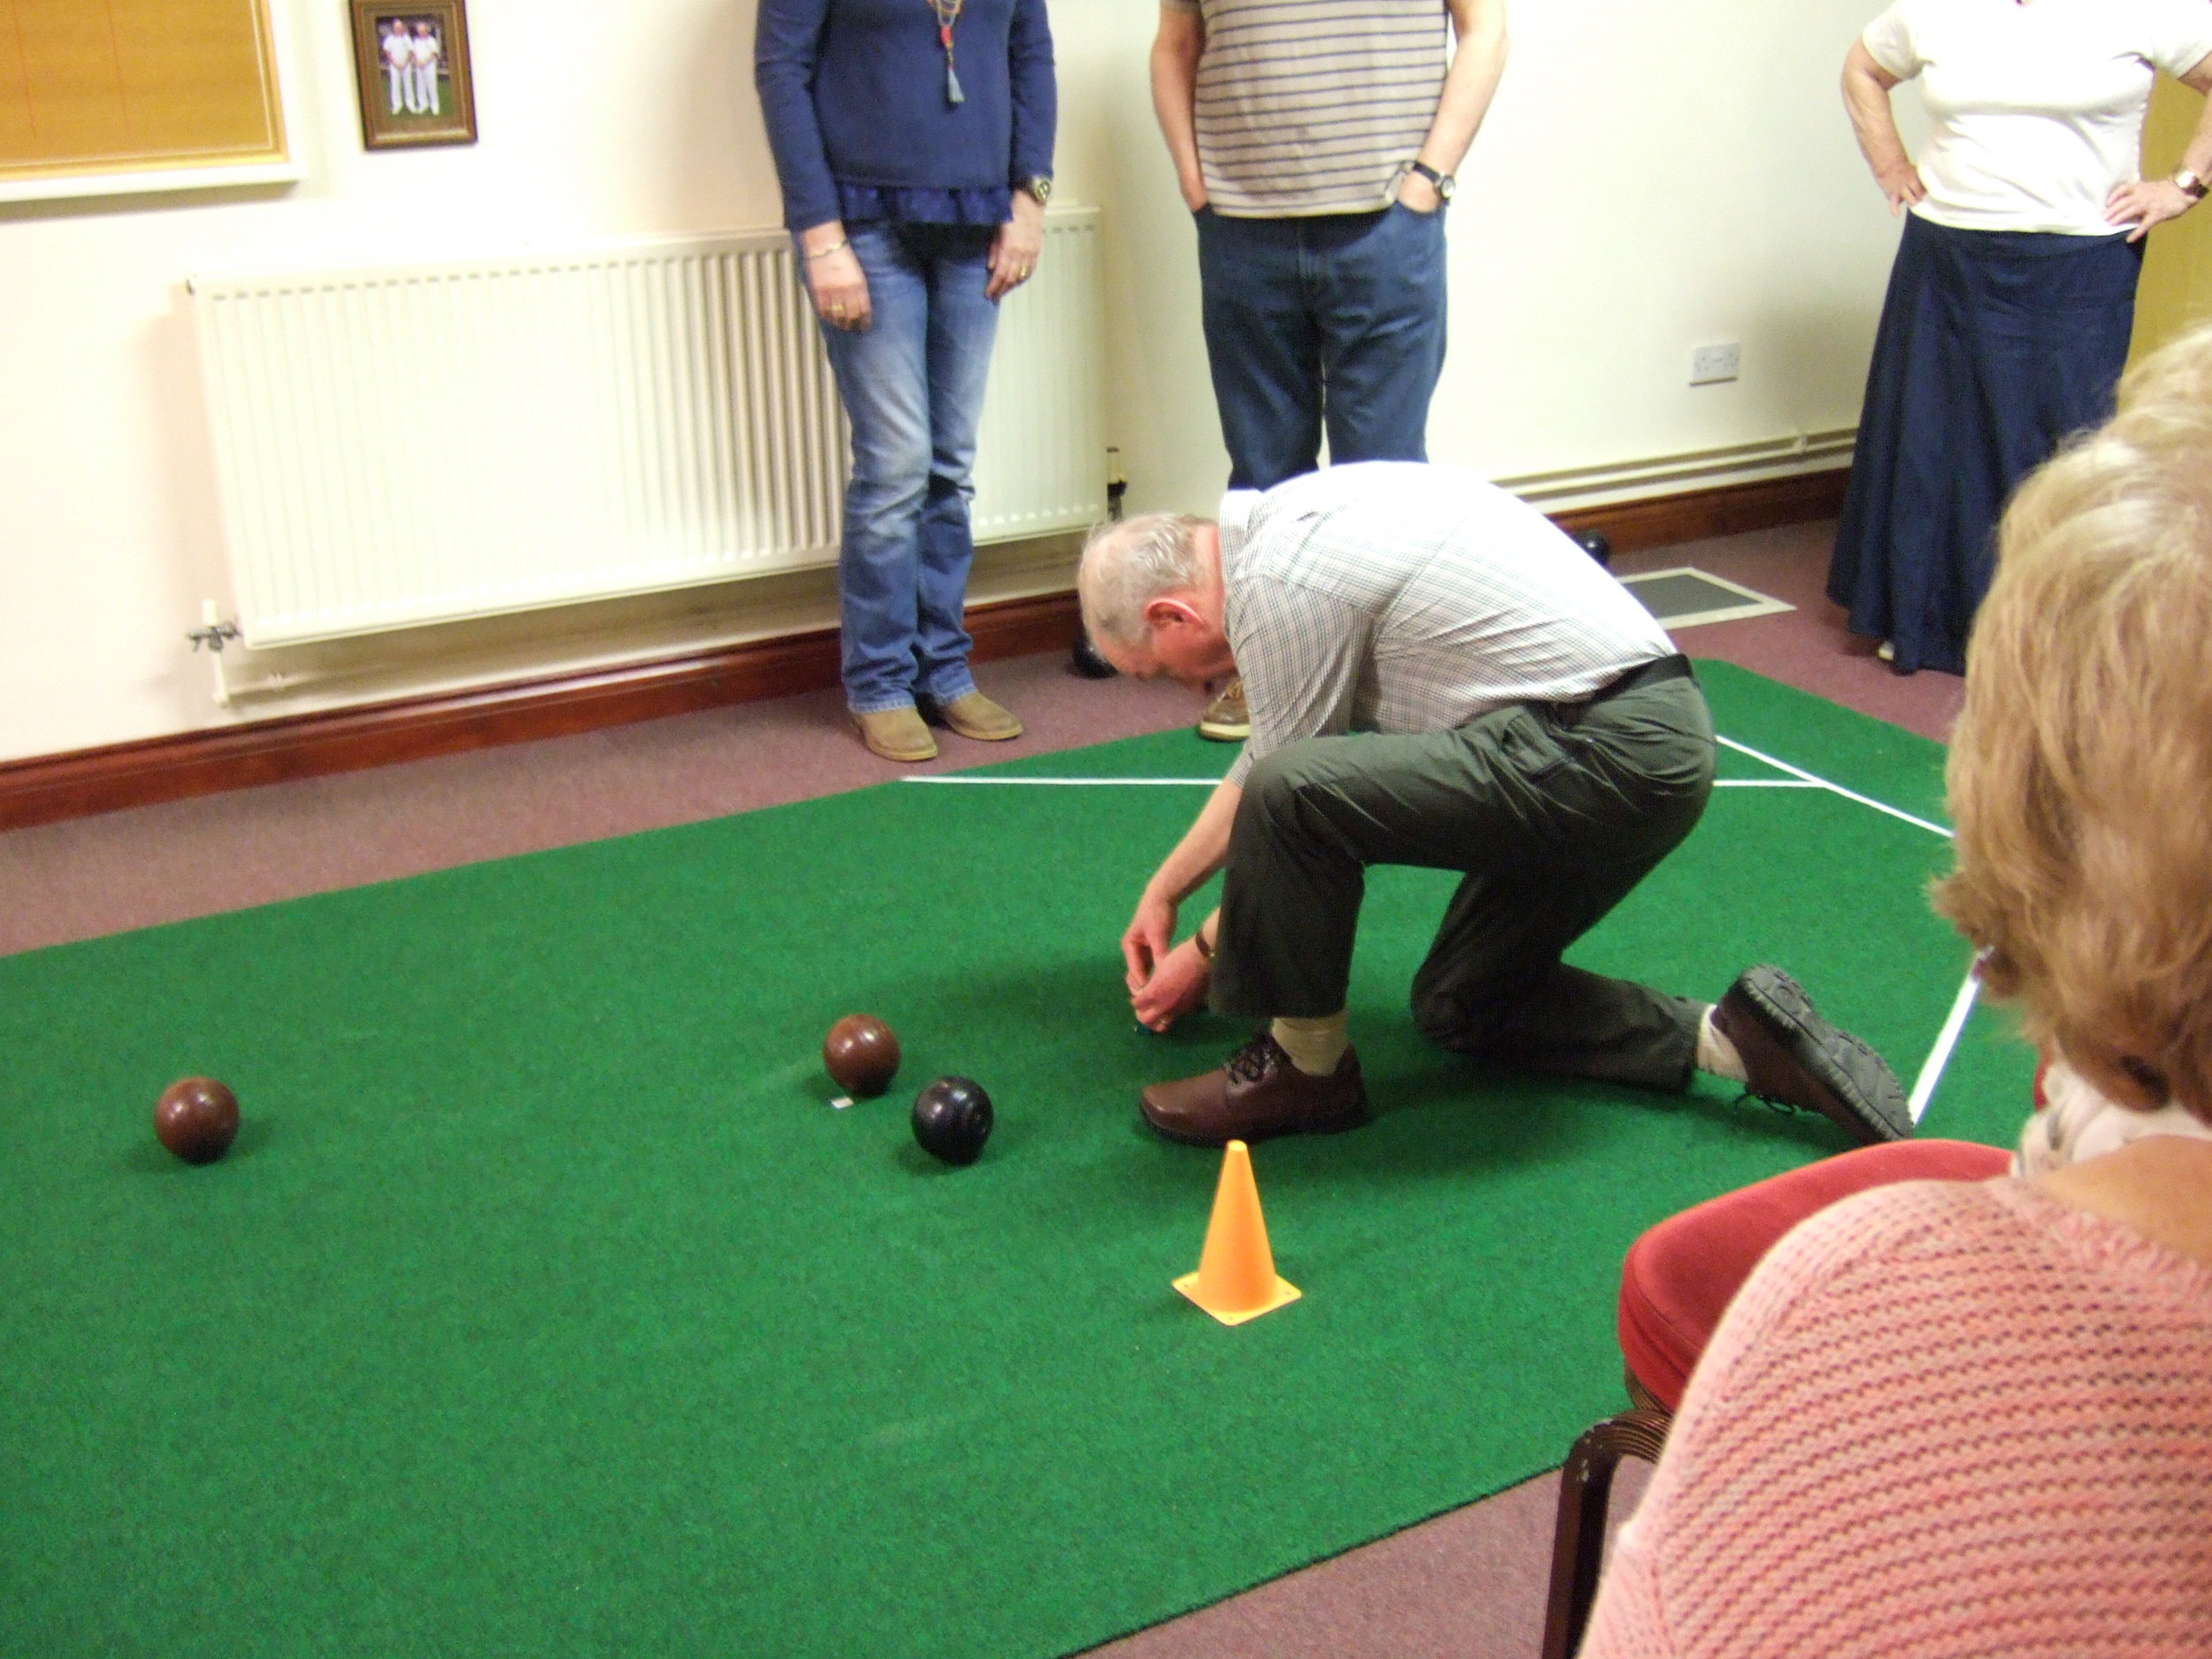 Come and join us every Wednesday for carpet bowls from 2 till 4 pm